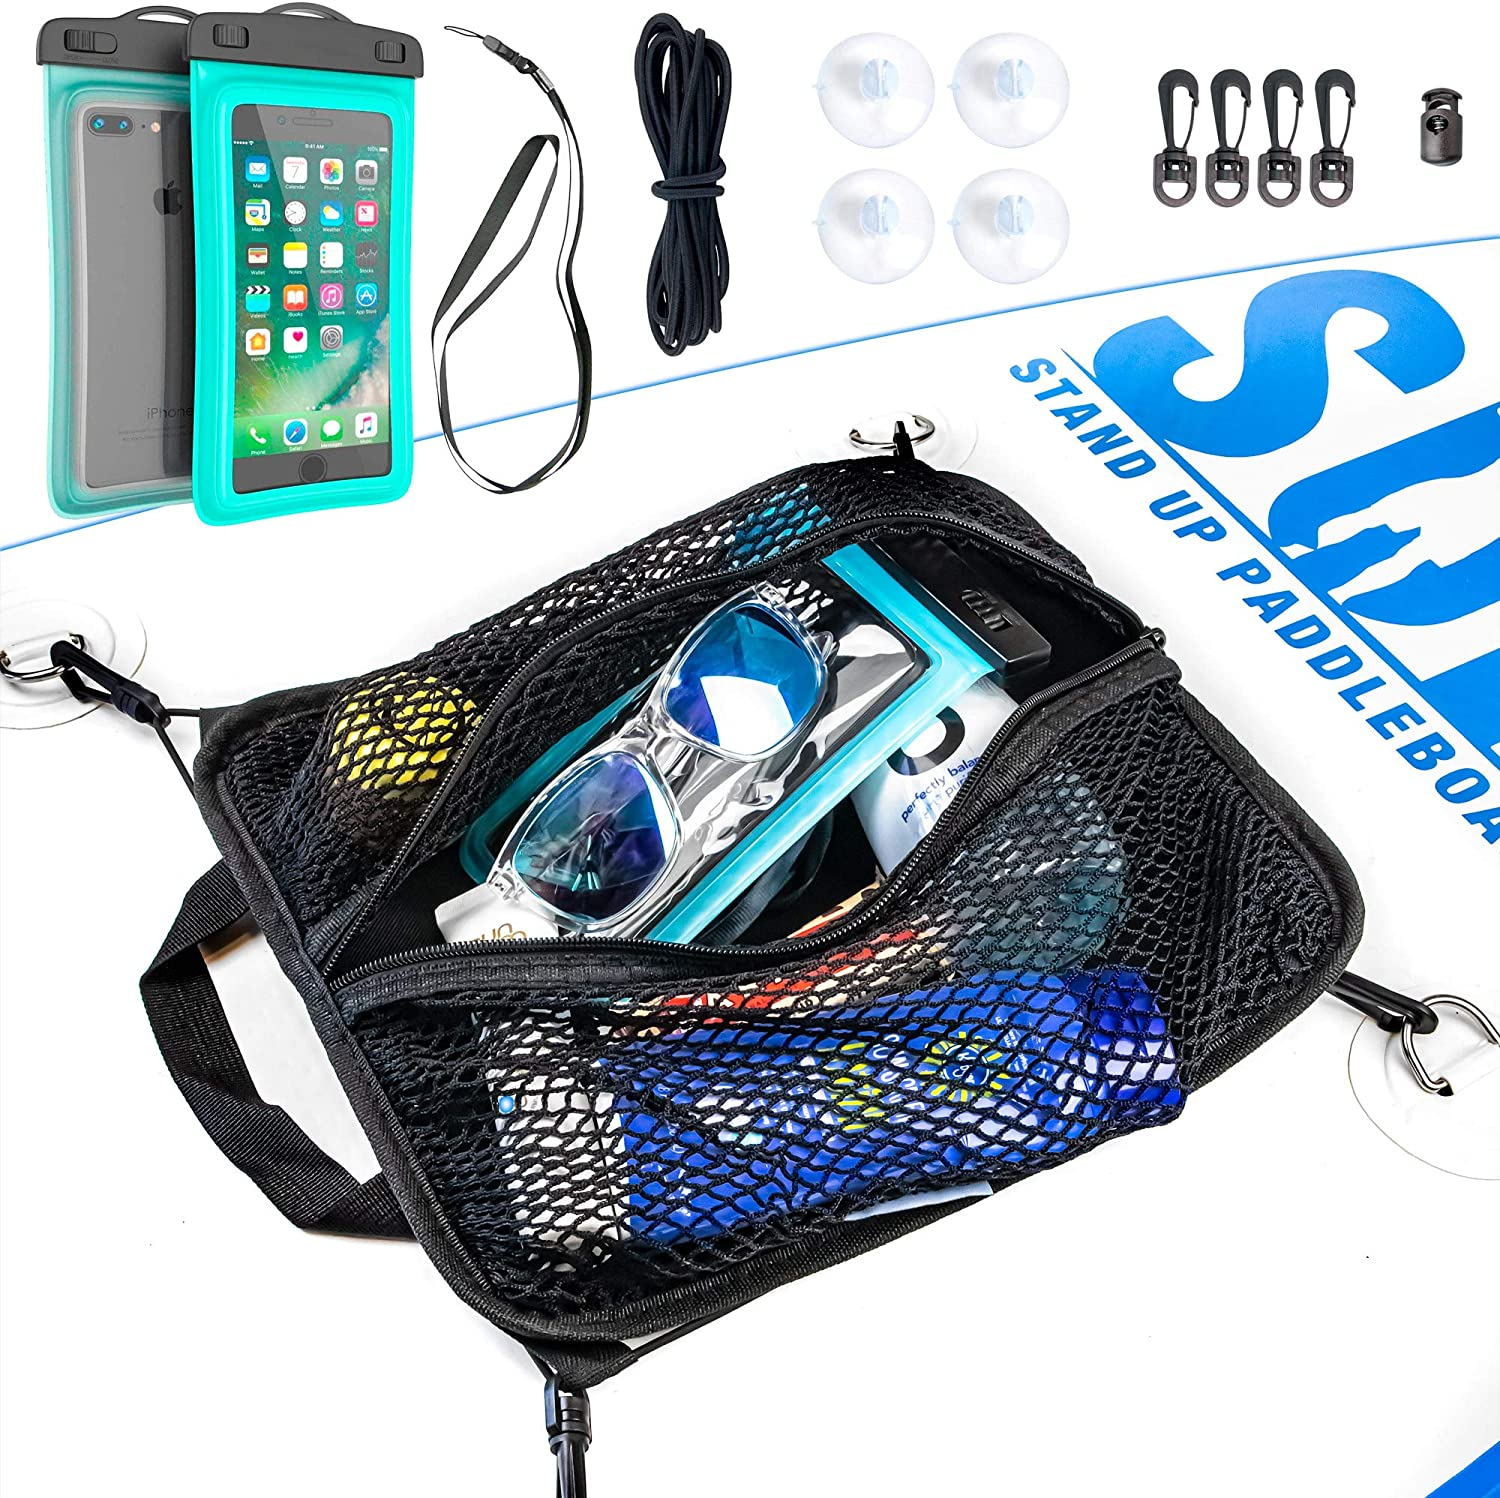 SUP-Now Paddleboard Deck Bag with Waterproof Phone Case